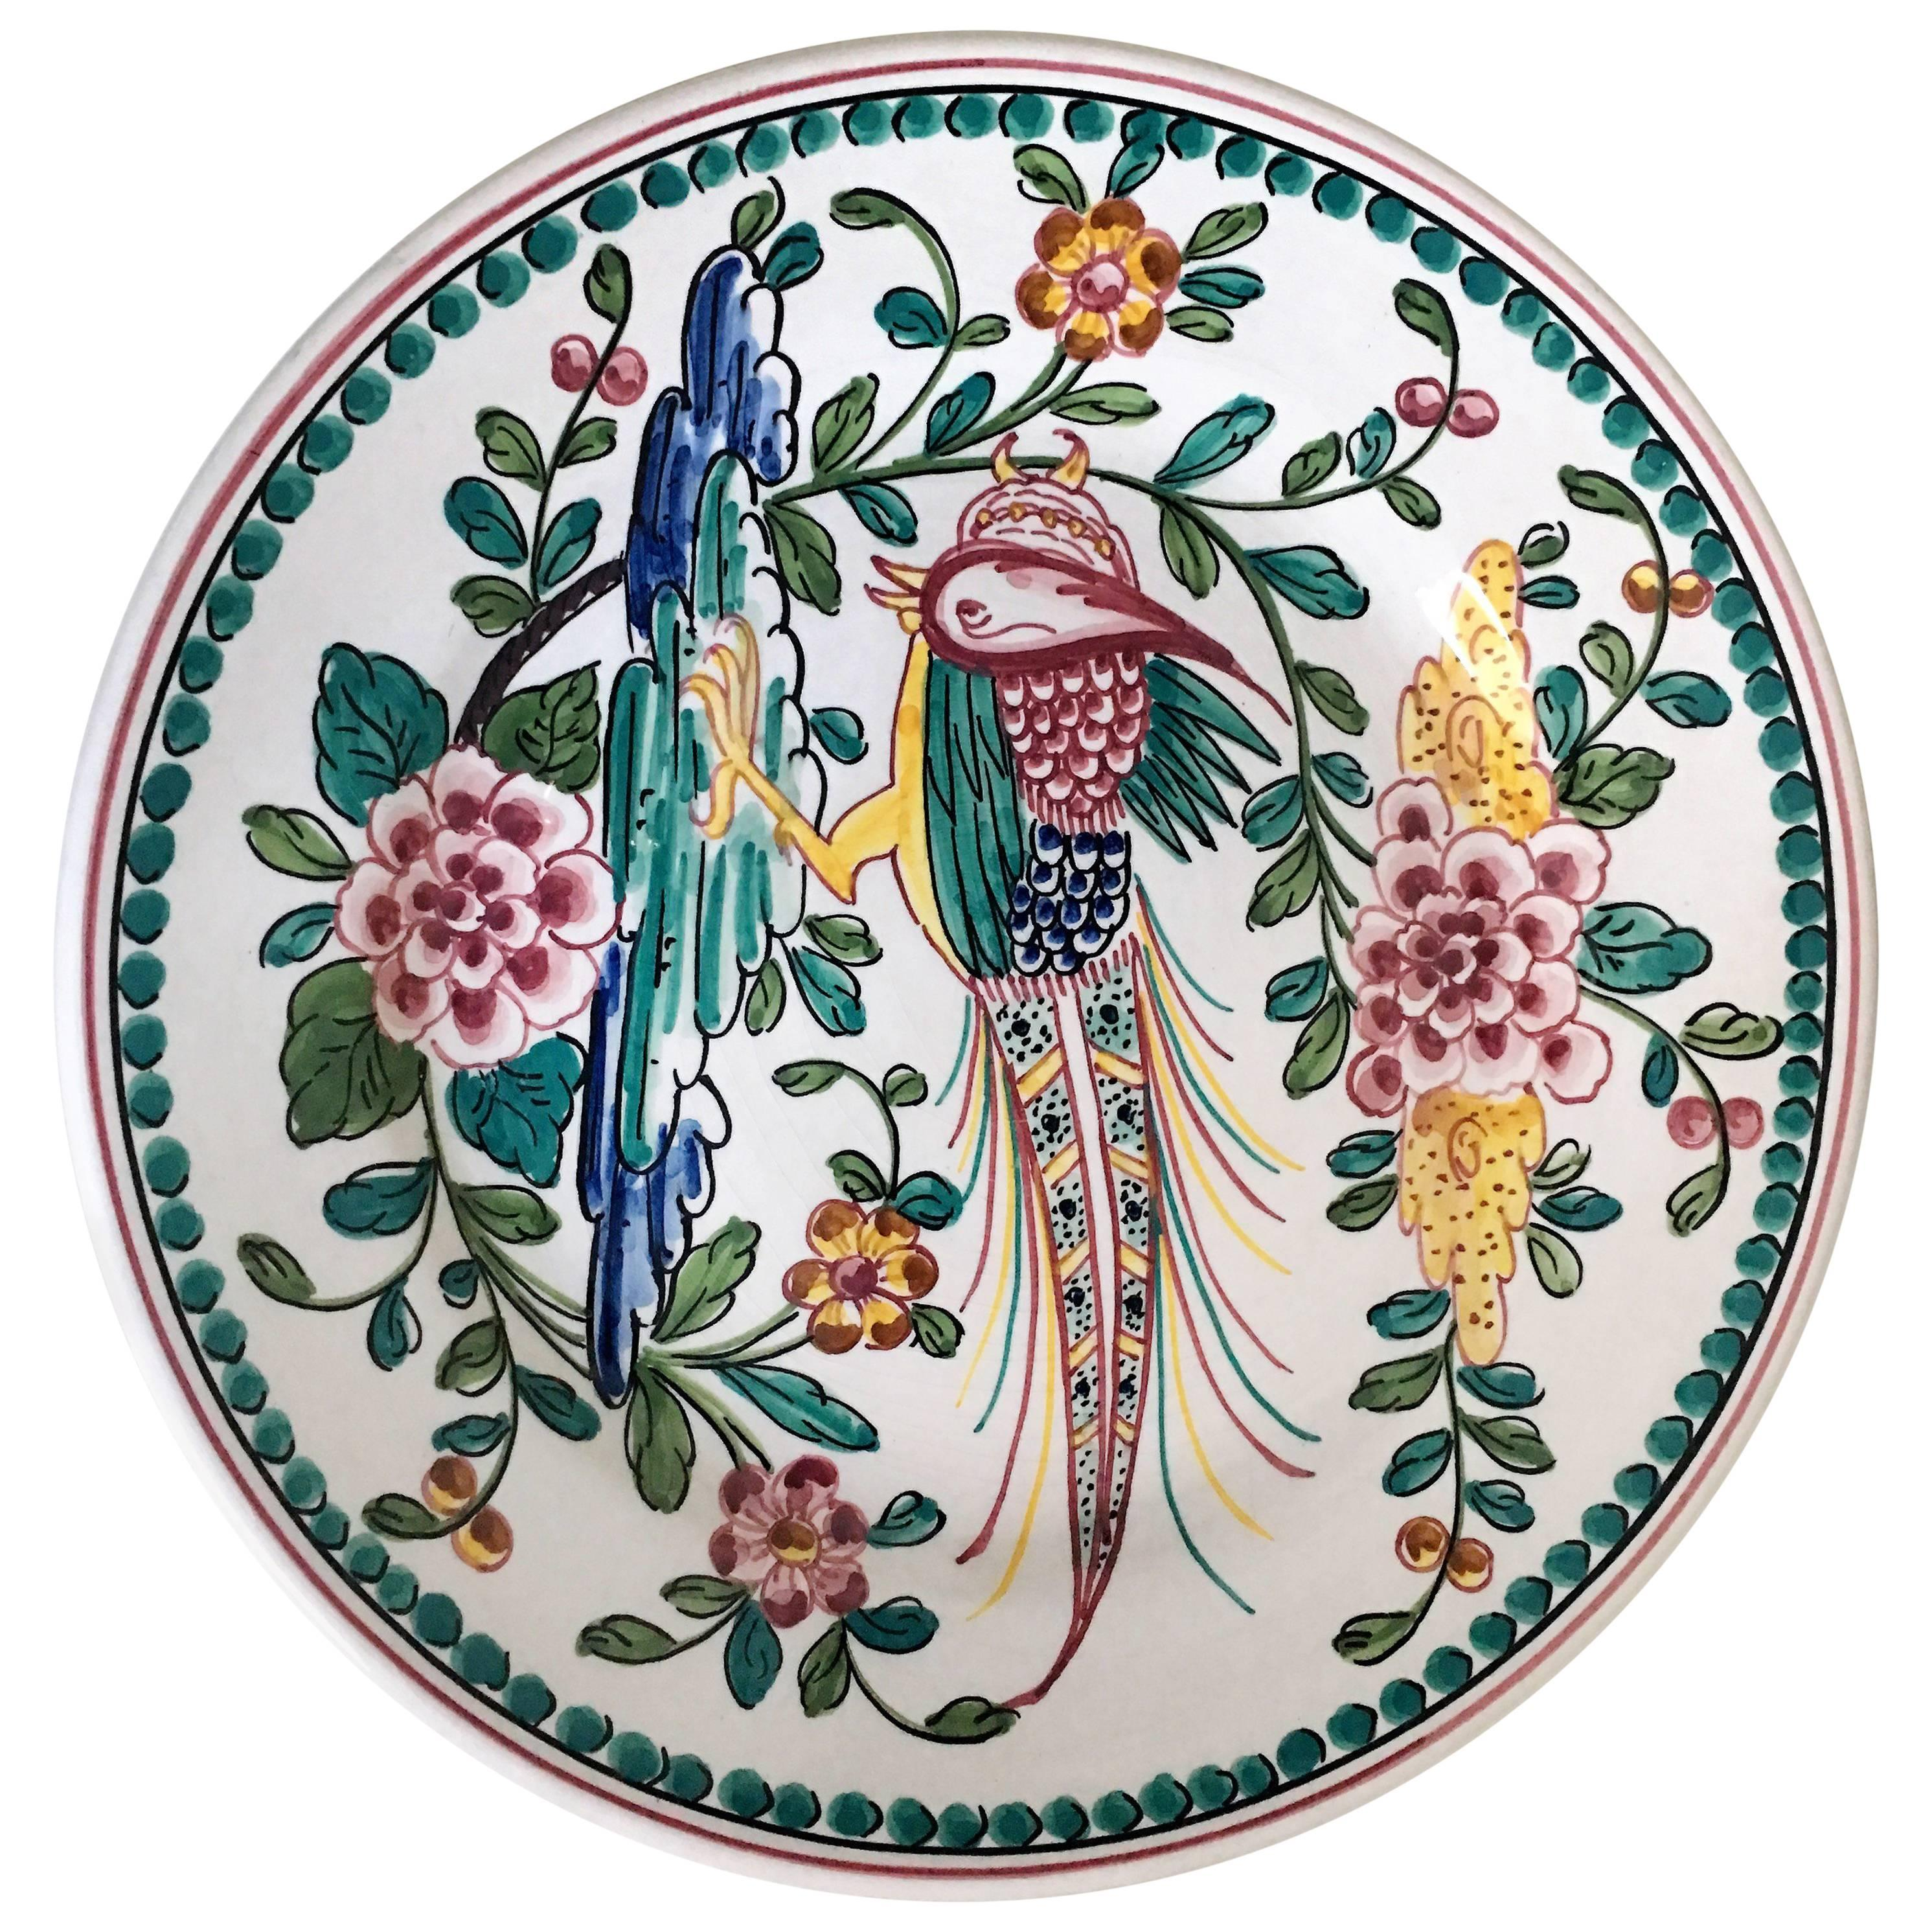 Vintage Outeiro Agueda Hand-Painted Plate from Portugal